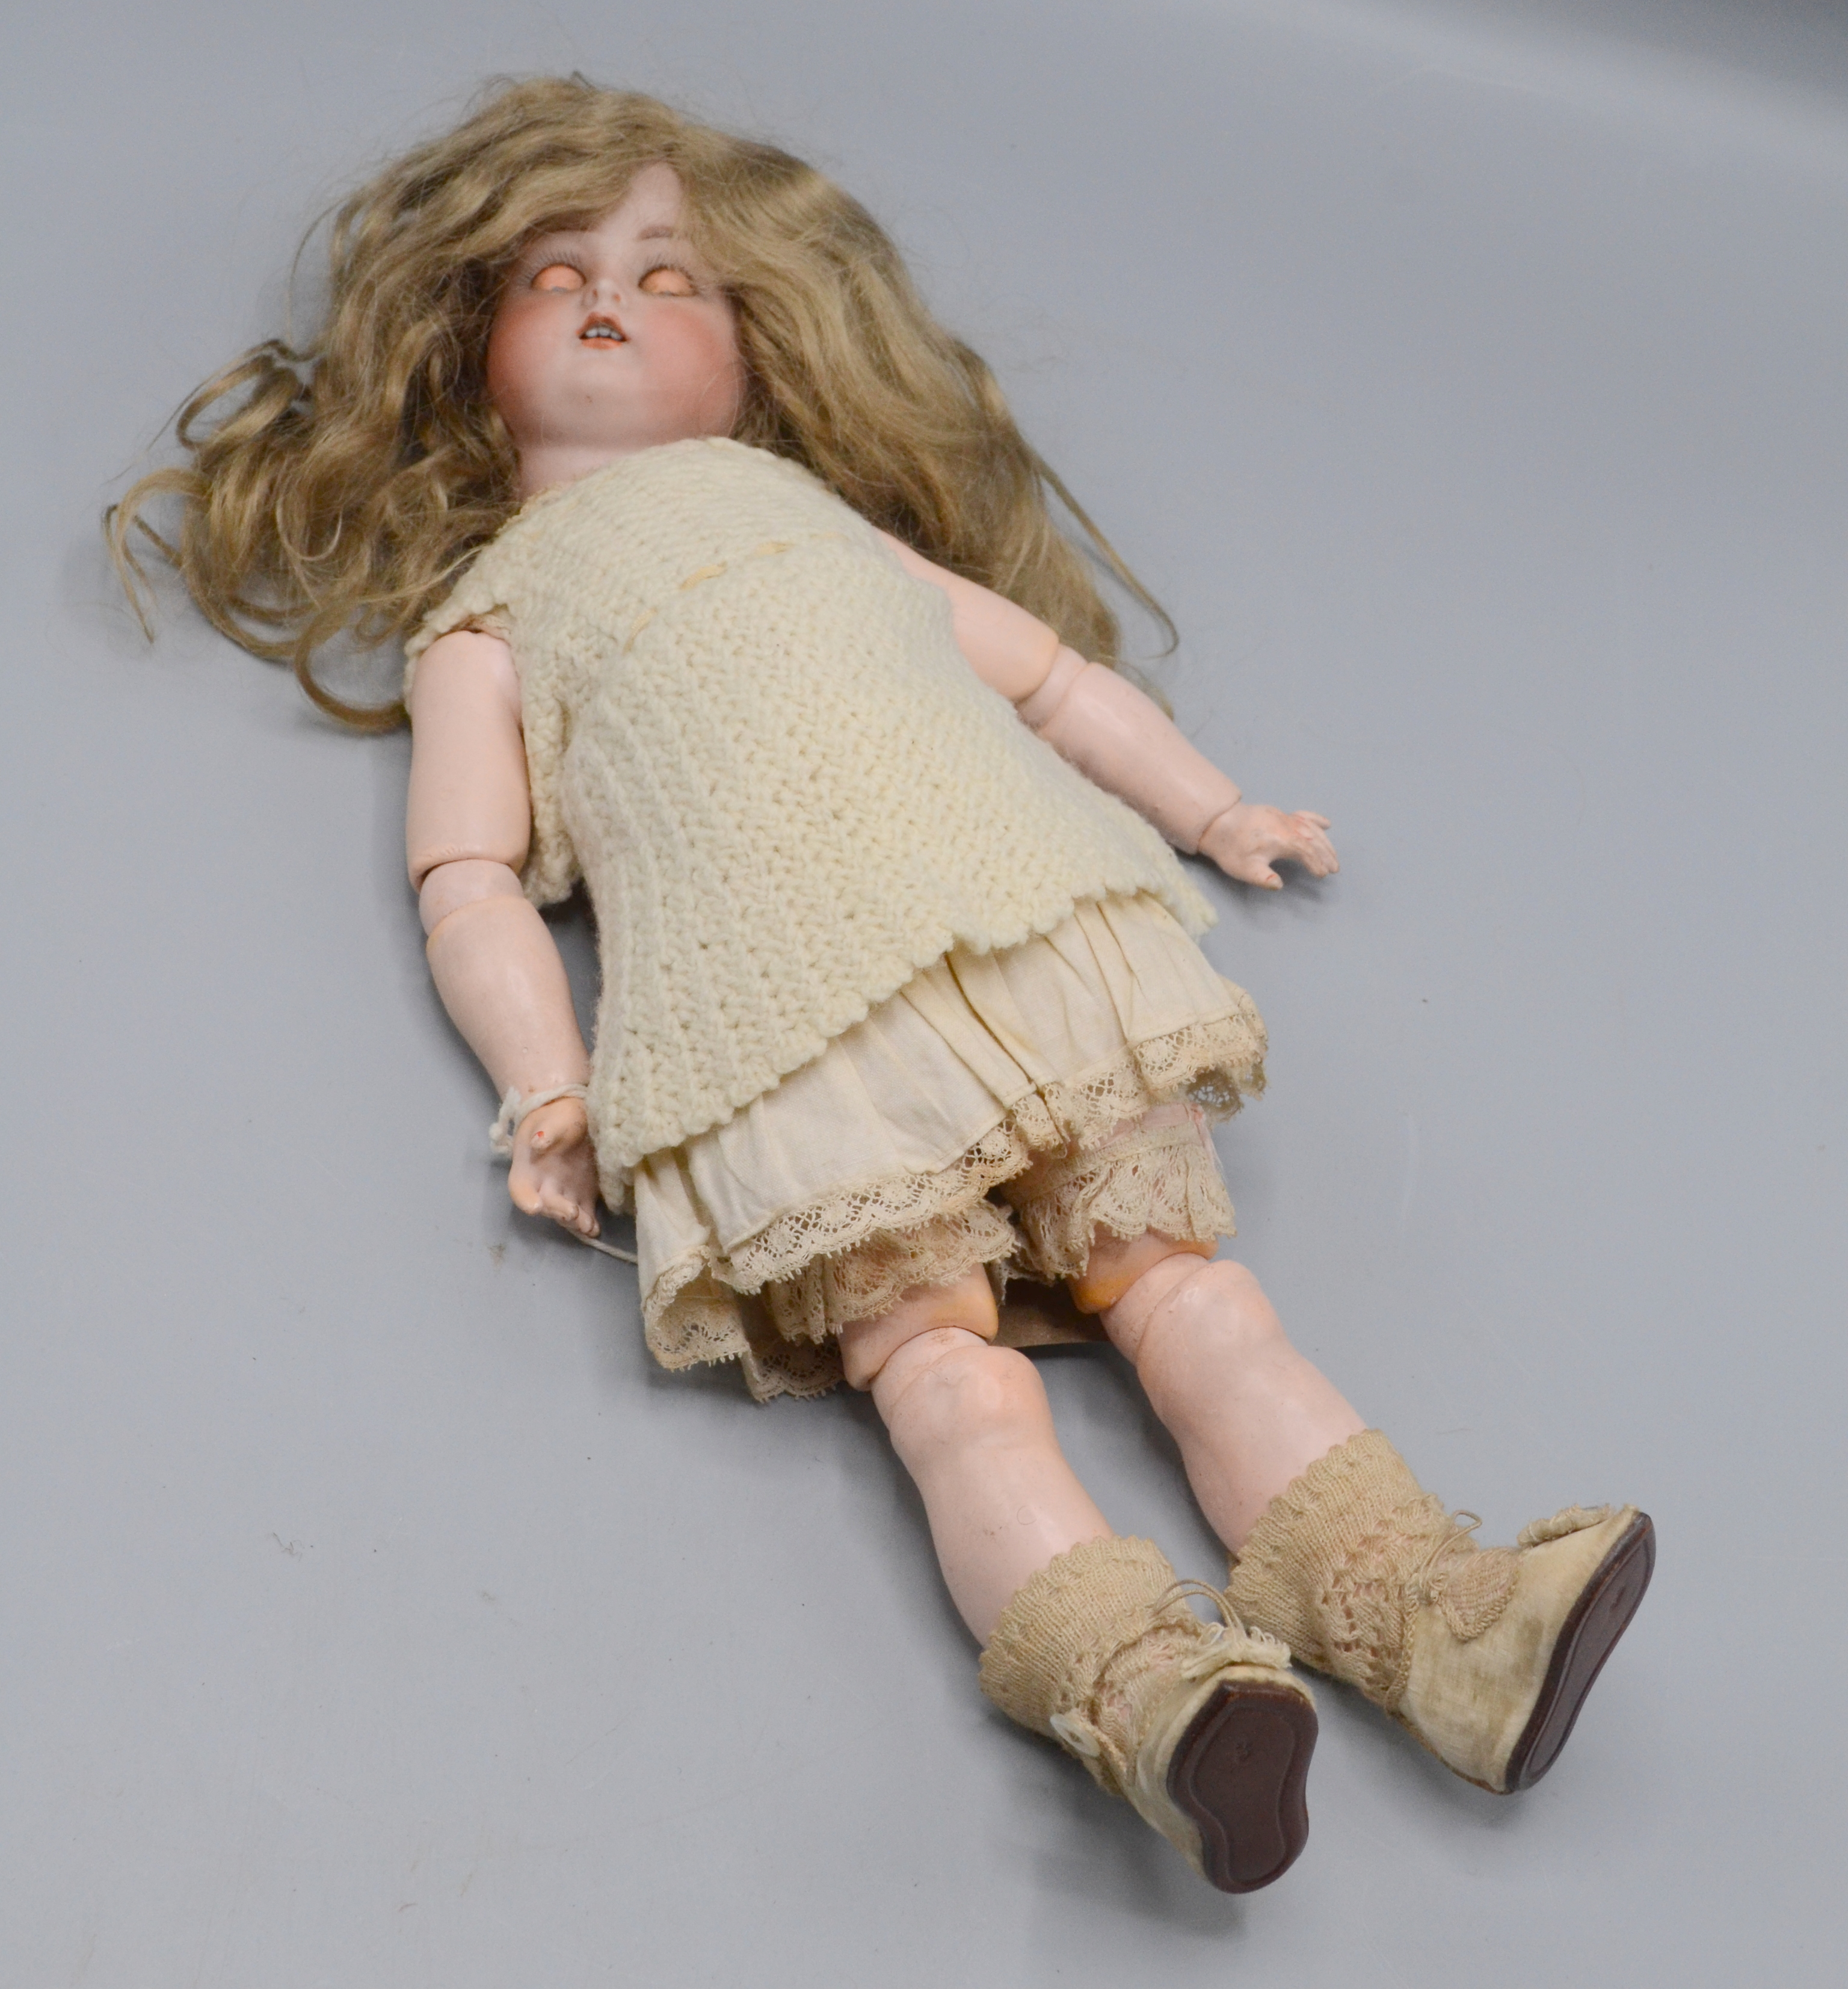 Lot 37 - A doll with a bisque porcelain head, articulated arms and legs, length 34.